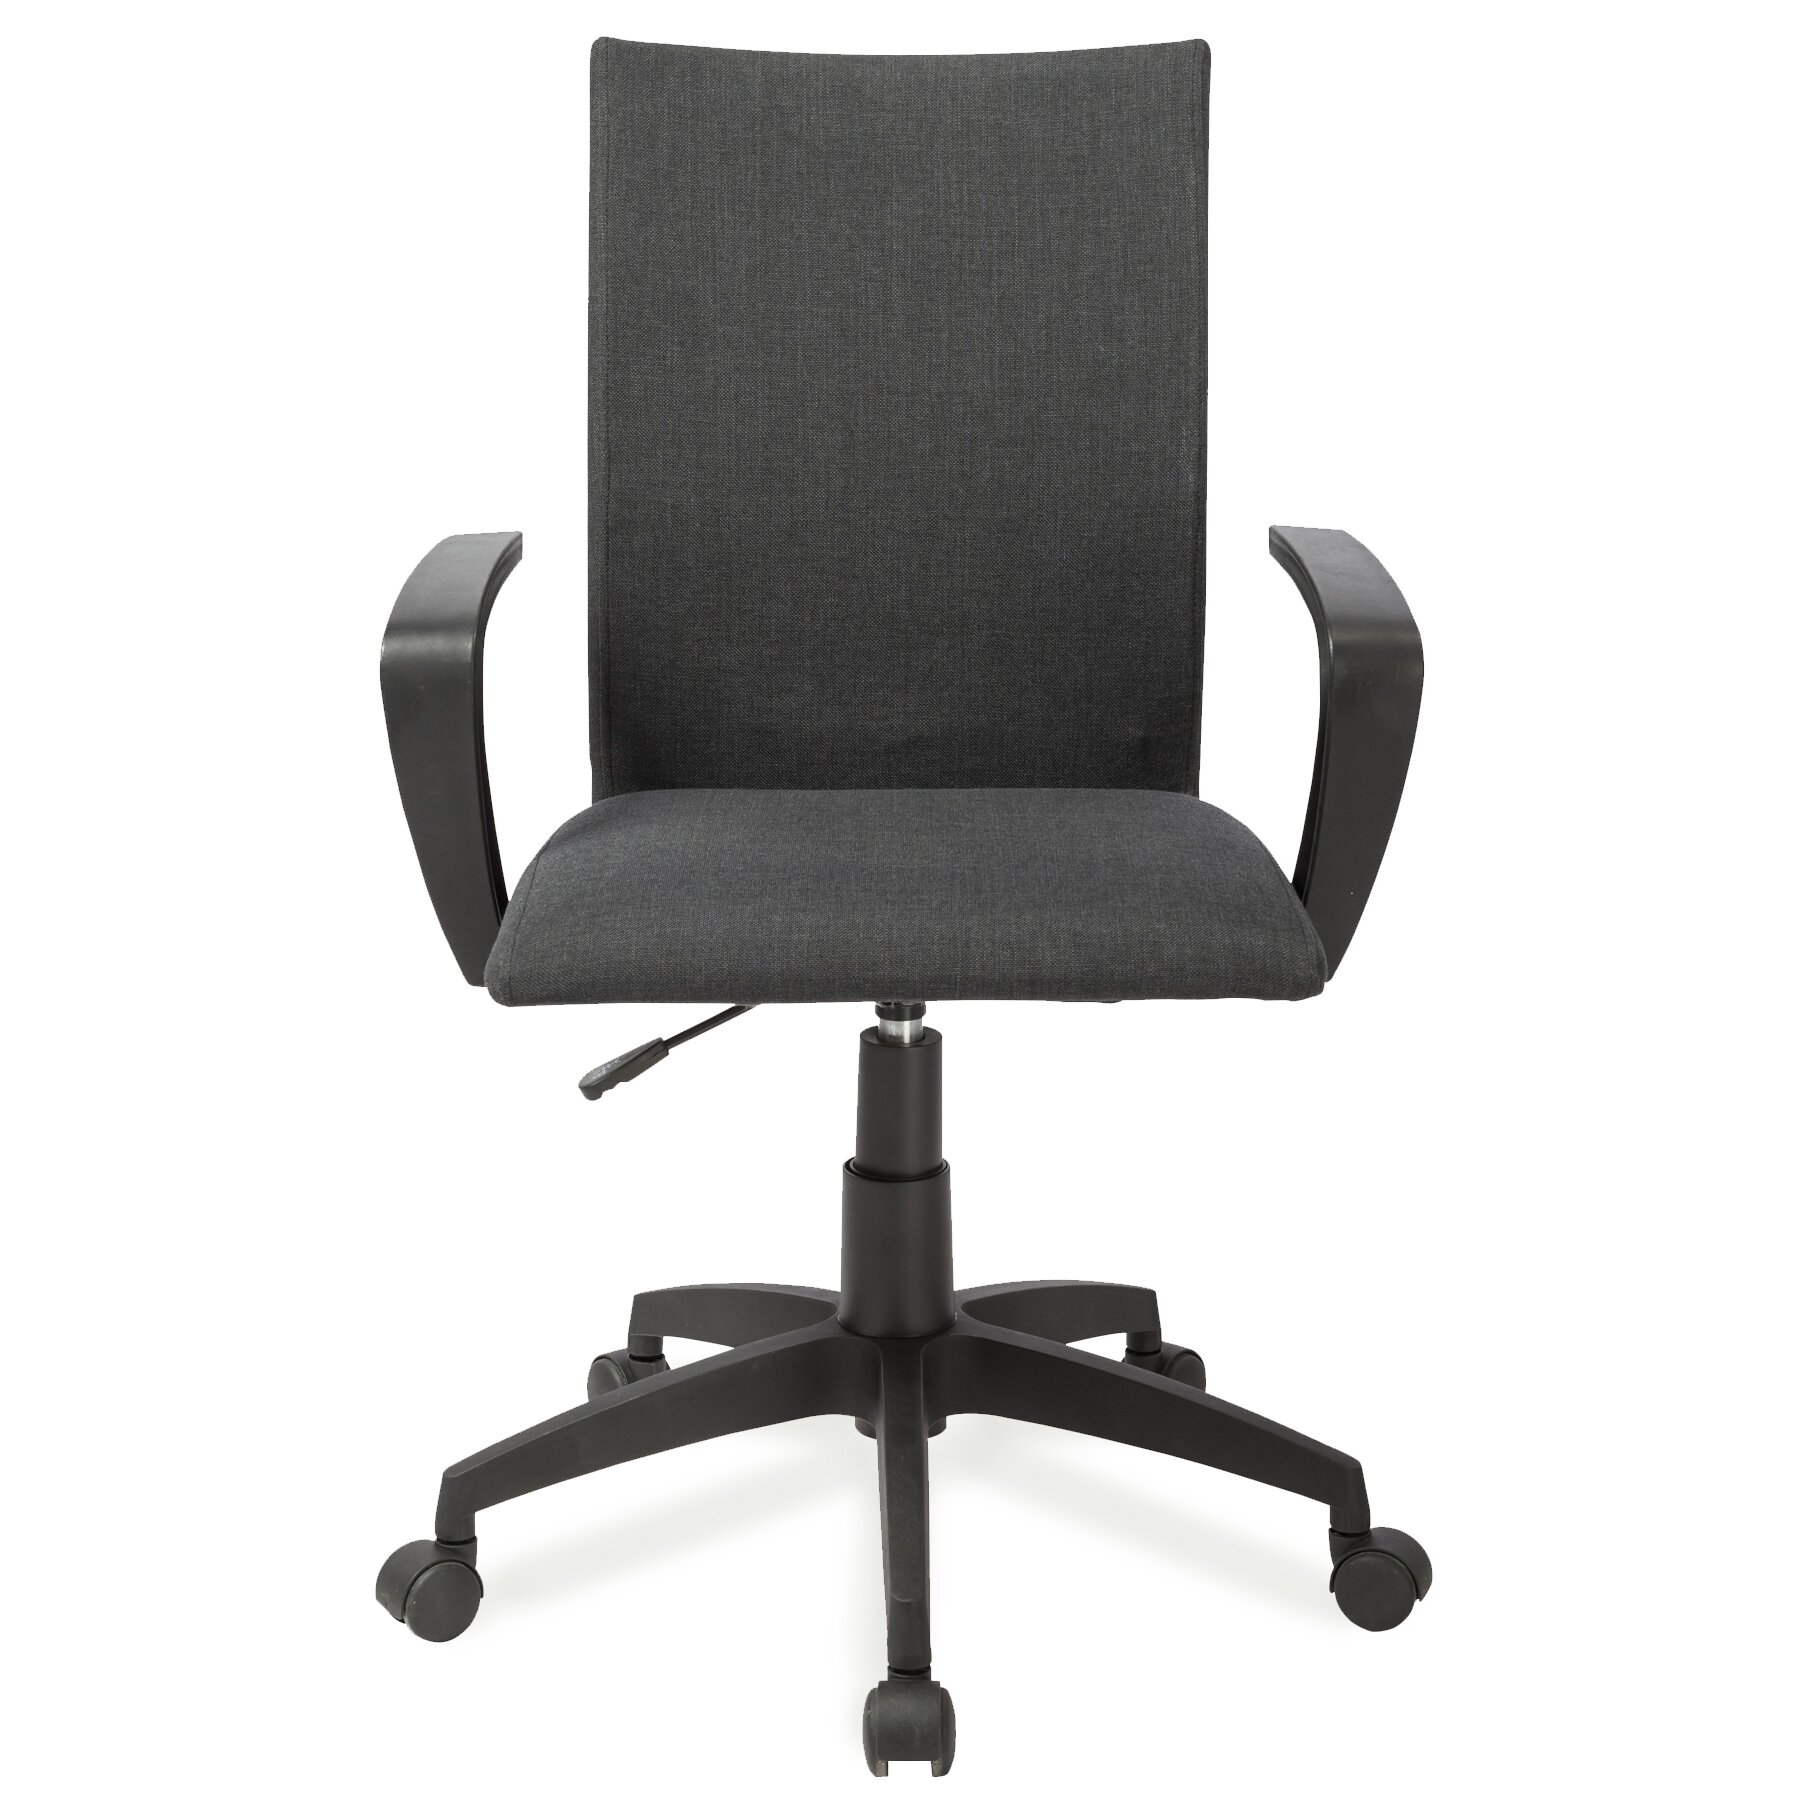 Leick high back office chair with arms reviews wayfair for Furniture 2 day shipping